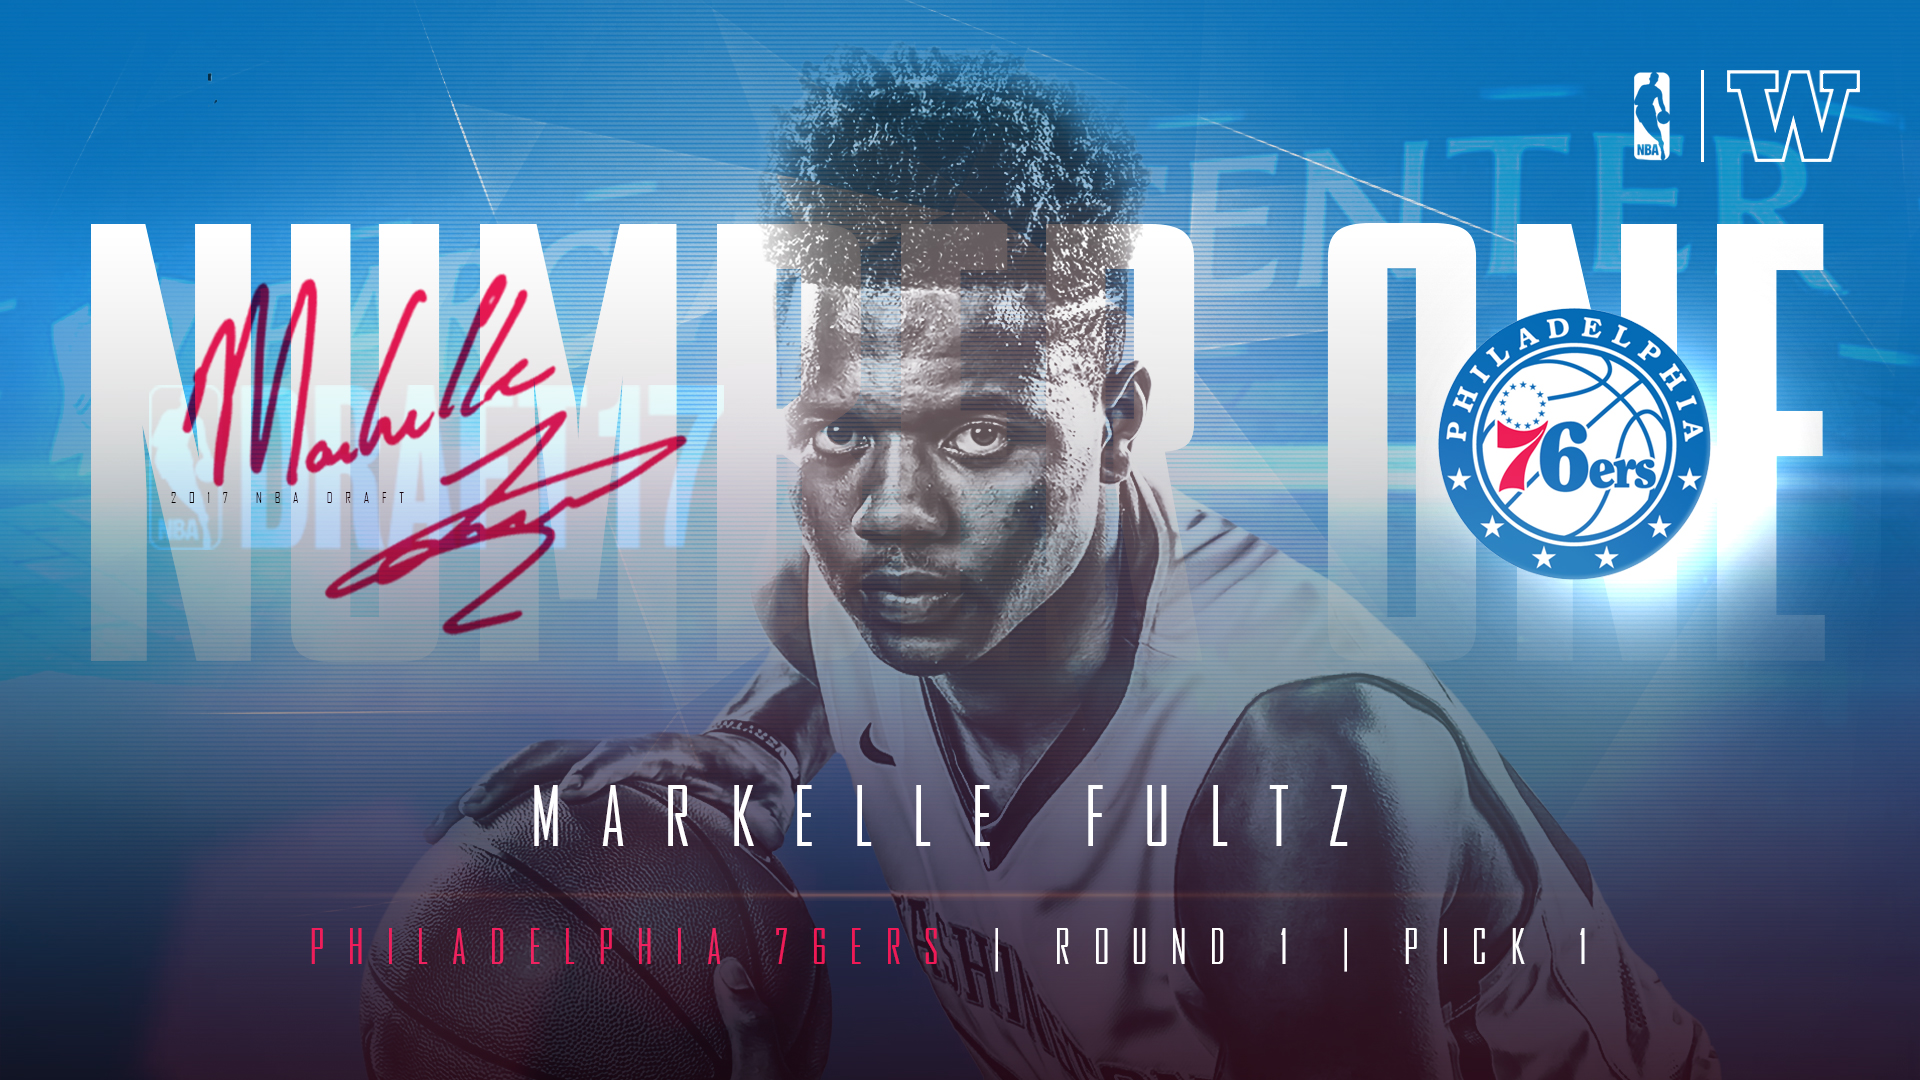 Markelle_fultz_number_one_1920x1080_71